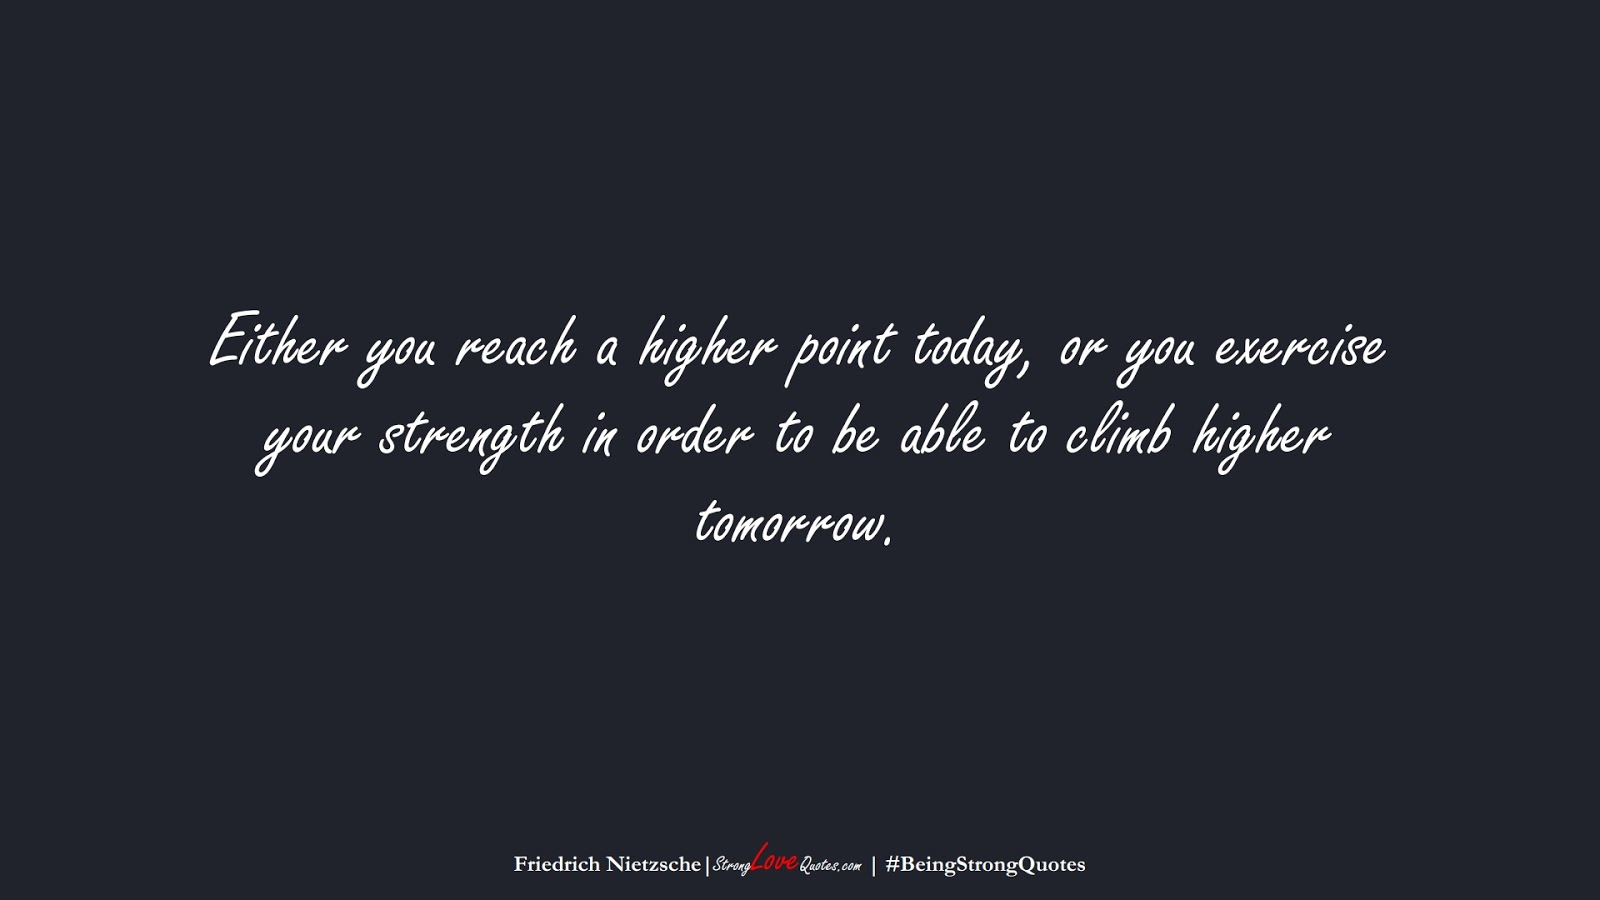 Either you reach a higher point today, or you exercise your strength in order to be able to climb higher tomorrow. (Friedrich Nietzsche);  #BeingStrongQuotes